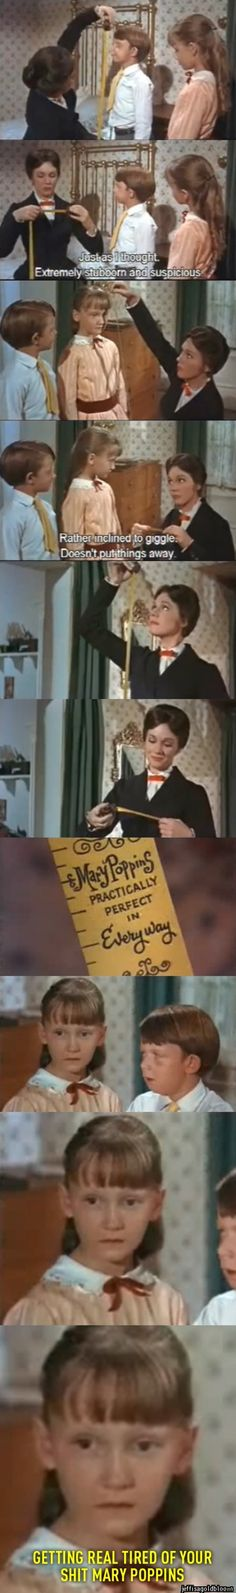 Mary Poppins, trolling children since 1964